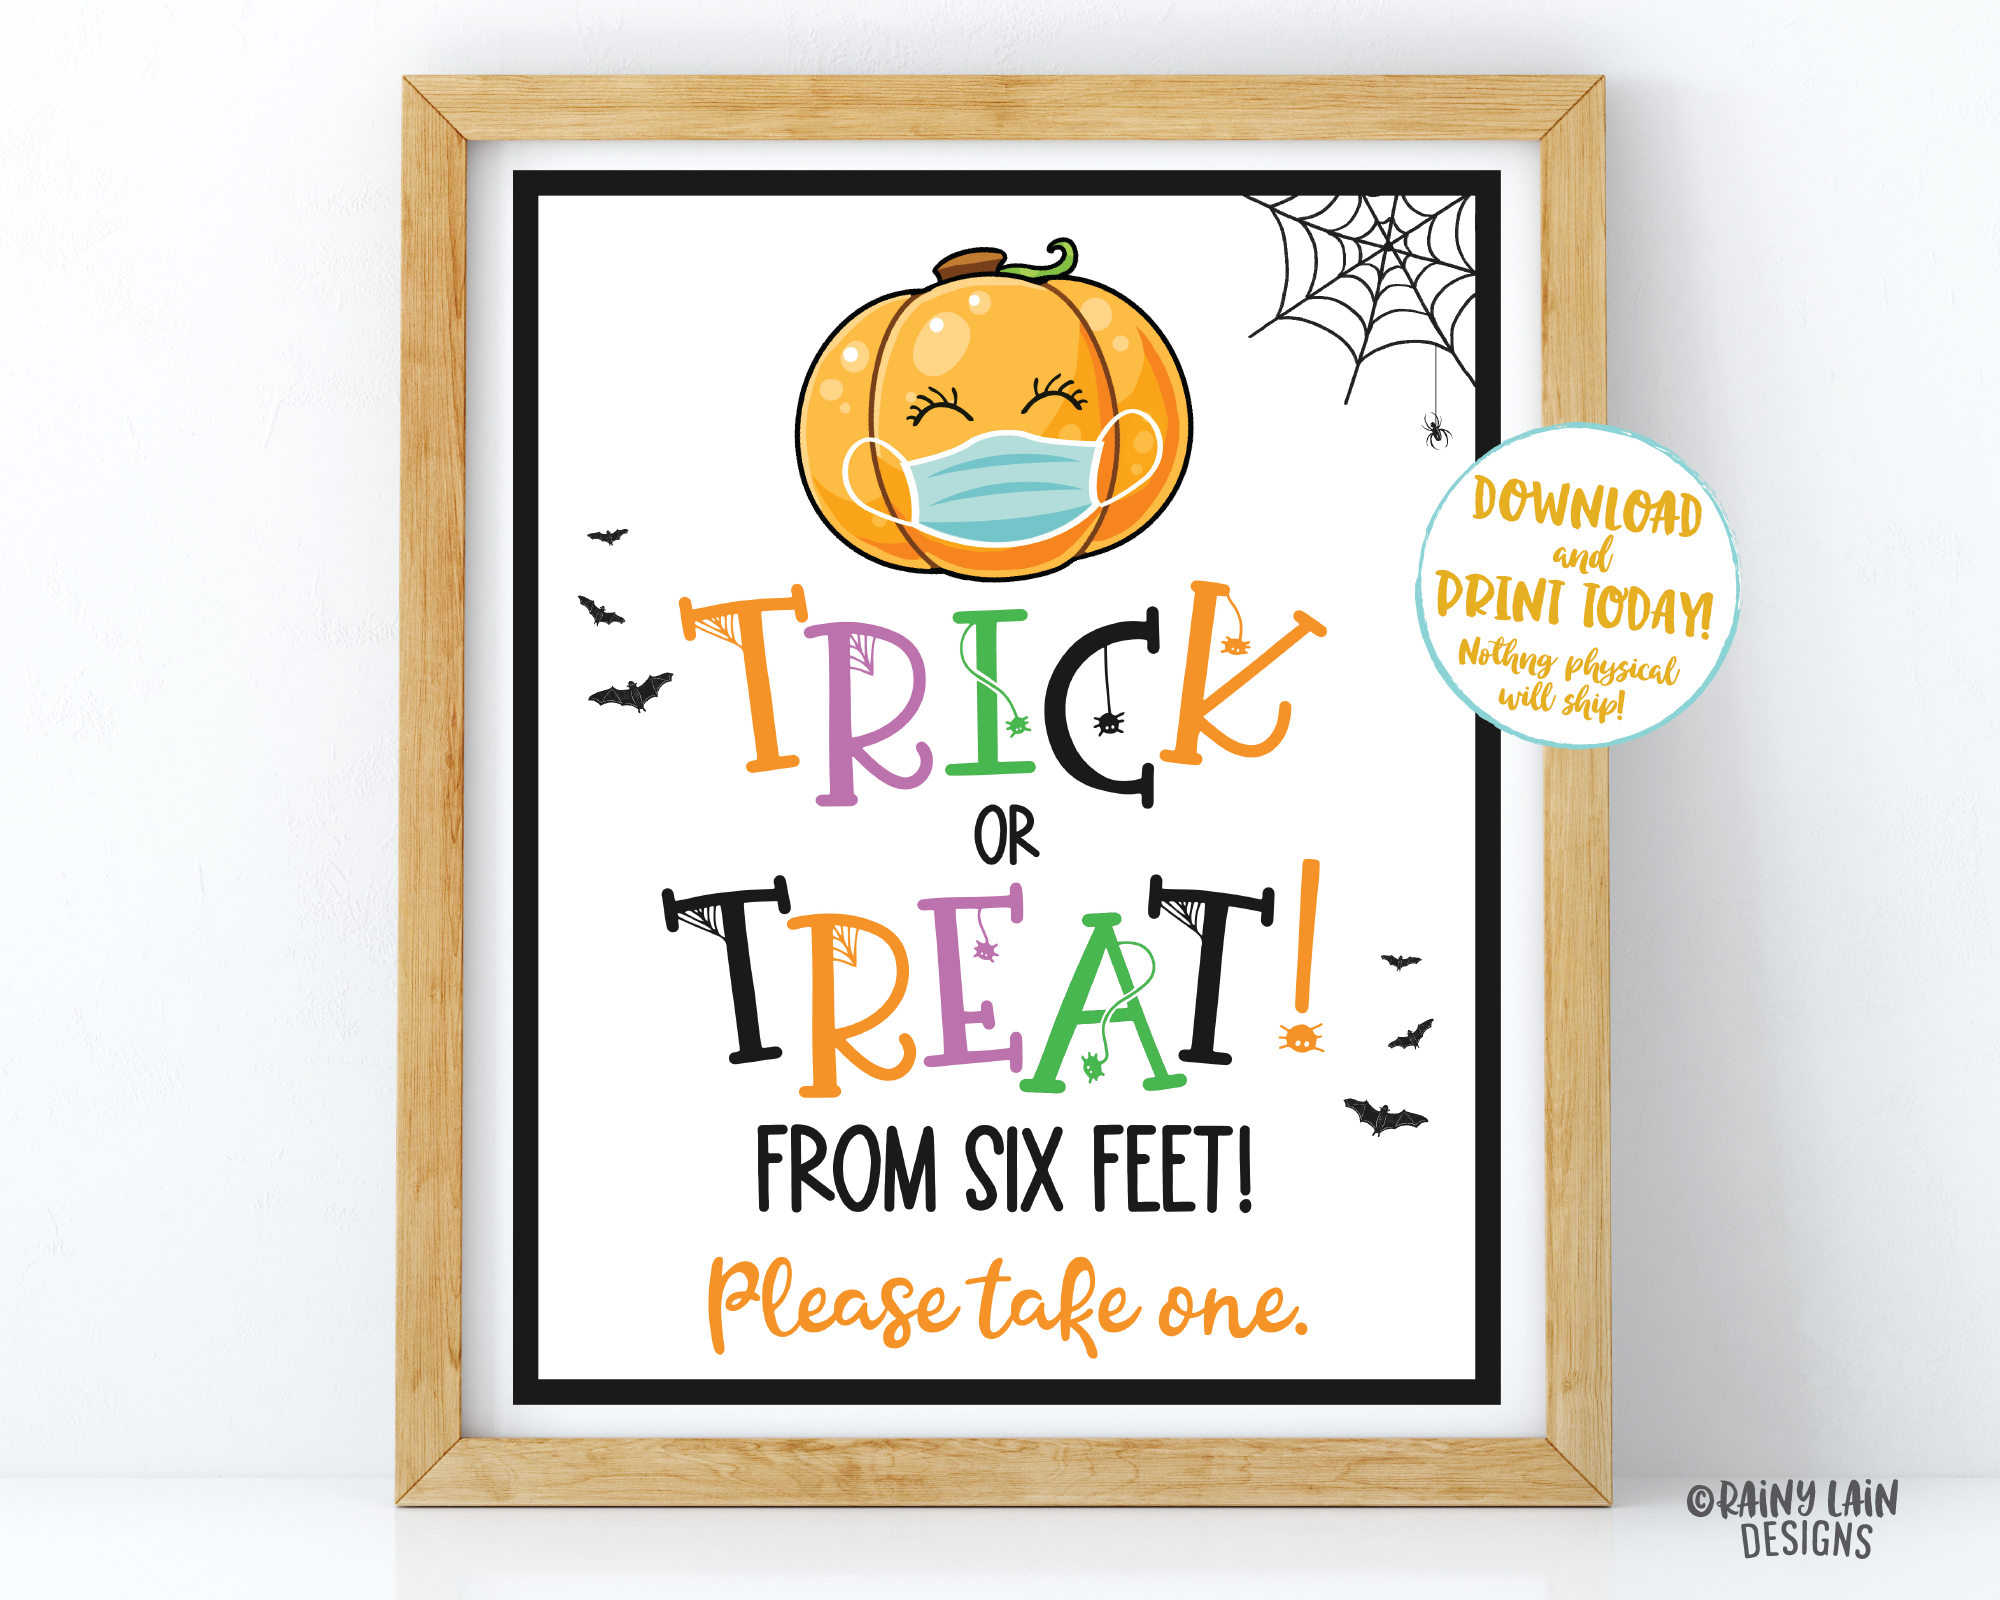 Trick or Treat From 6 Feet Sign Halloween Sign Trick or Treat Table Sign Quarantine Social Distancing 2020 Halloween Please take one sign